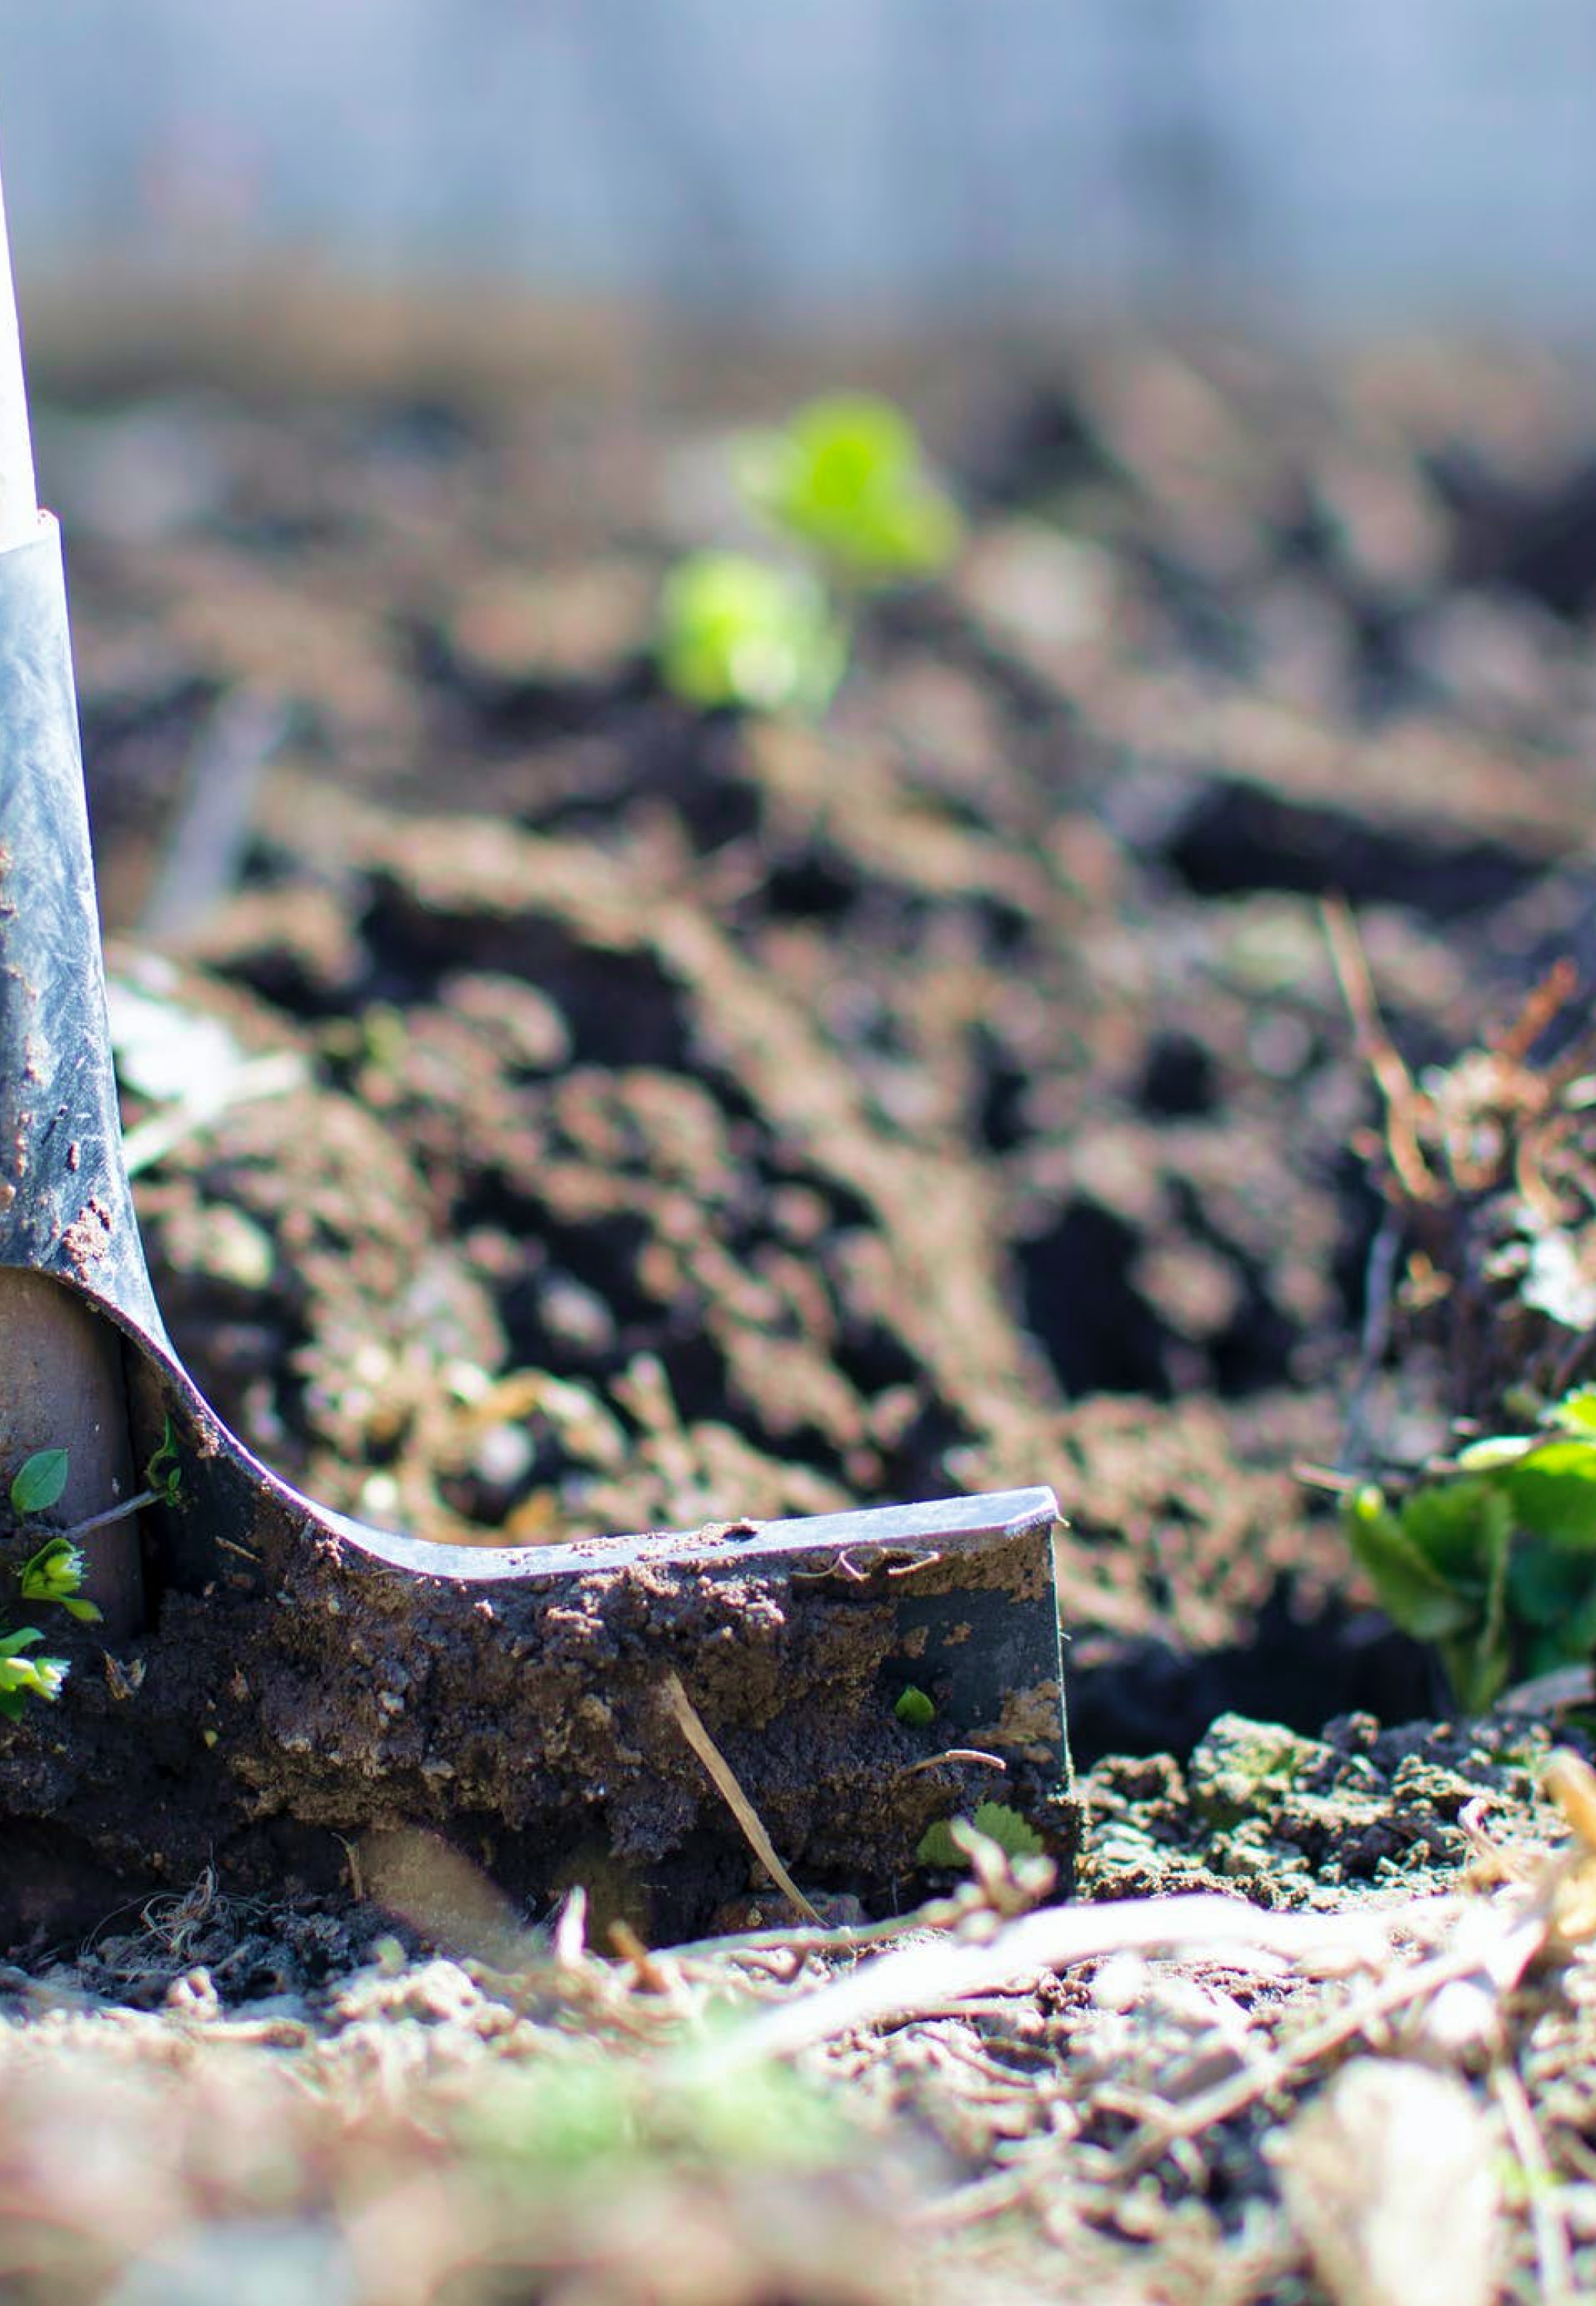 A closeup image of a shovel digging up fresh soil